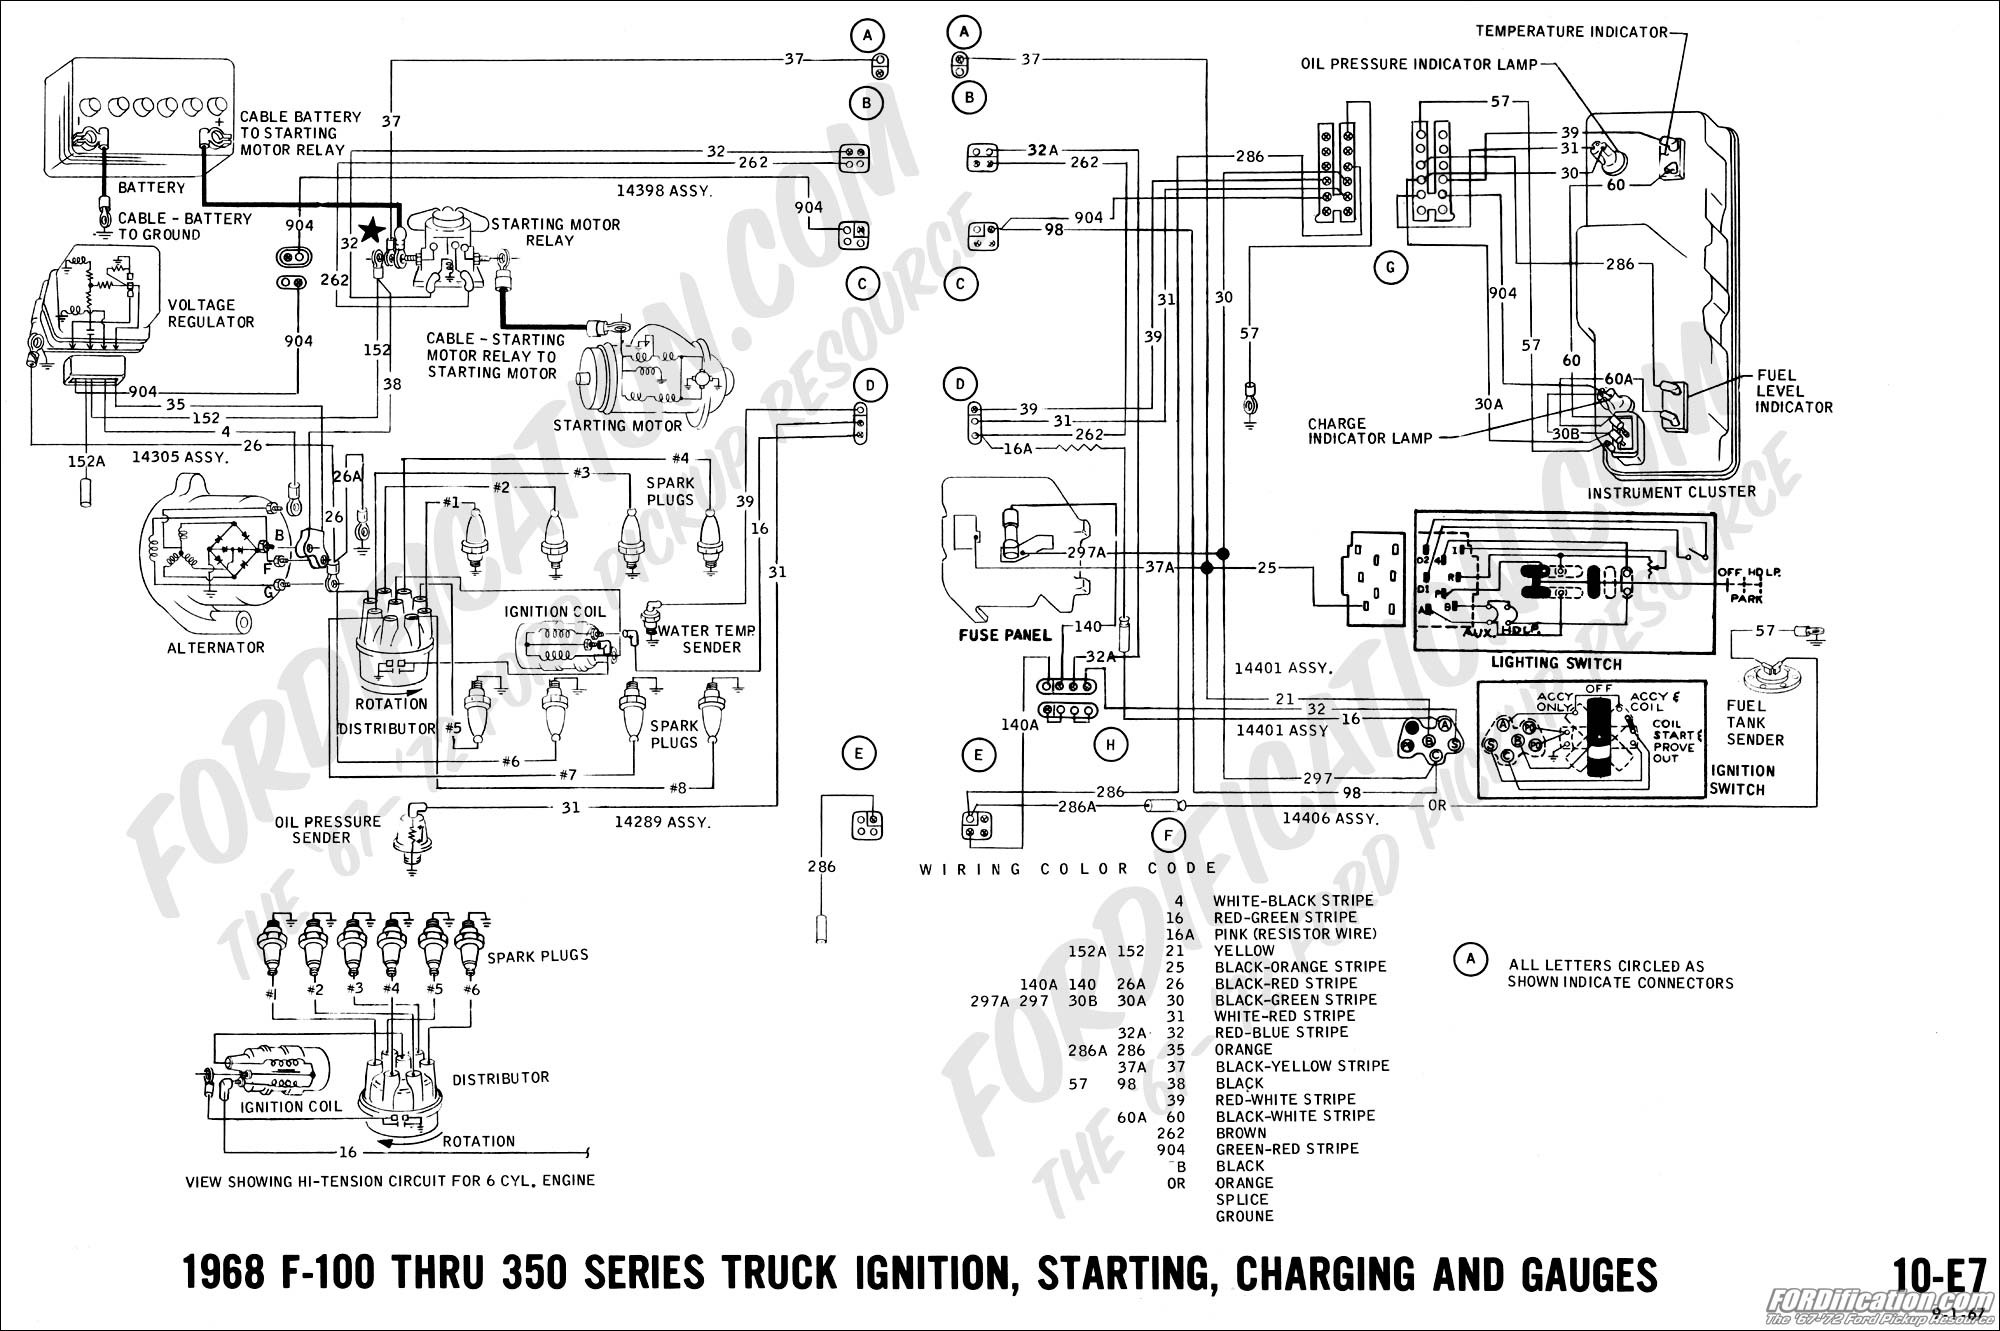 Ford Taurus Engine Diagram ford Mustang Wiper Motor Diagram Also Wiring Diagram Meke Of Ford Taurus Engine Diagram